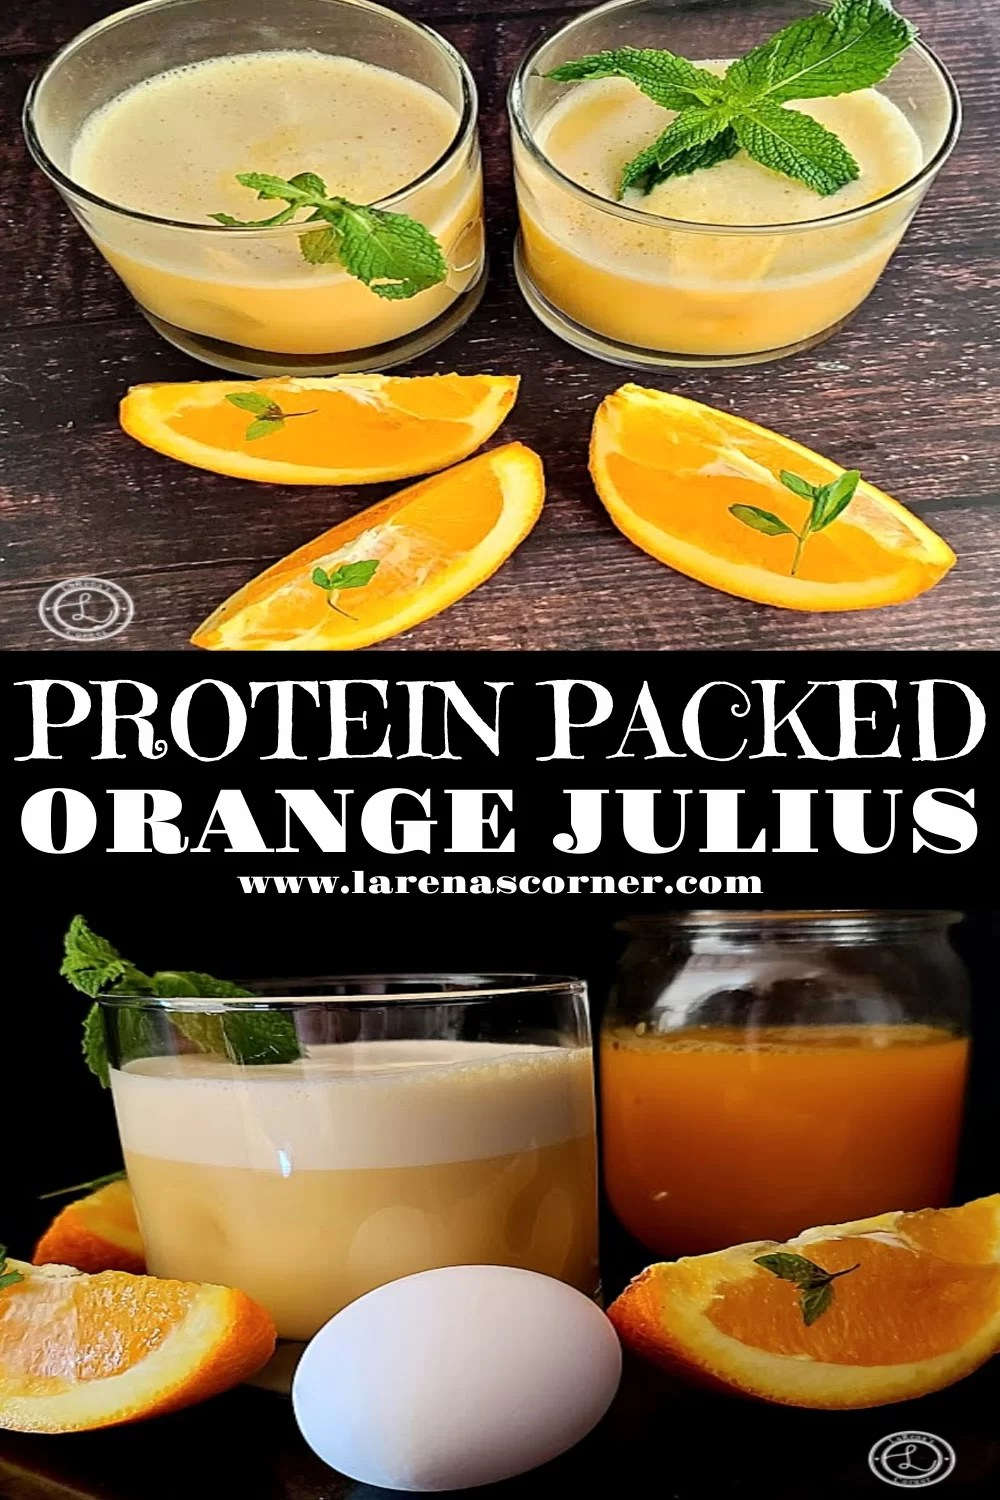 Two separate pictures of Protein Packed Orange Julius